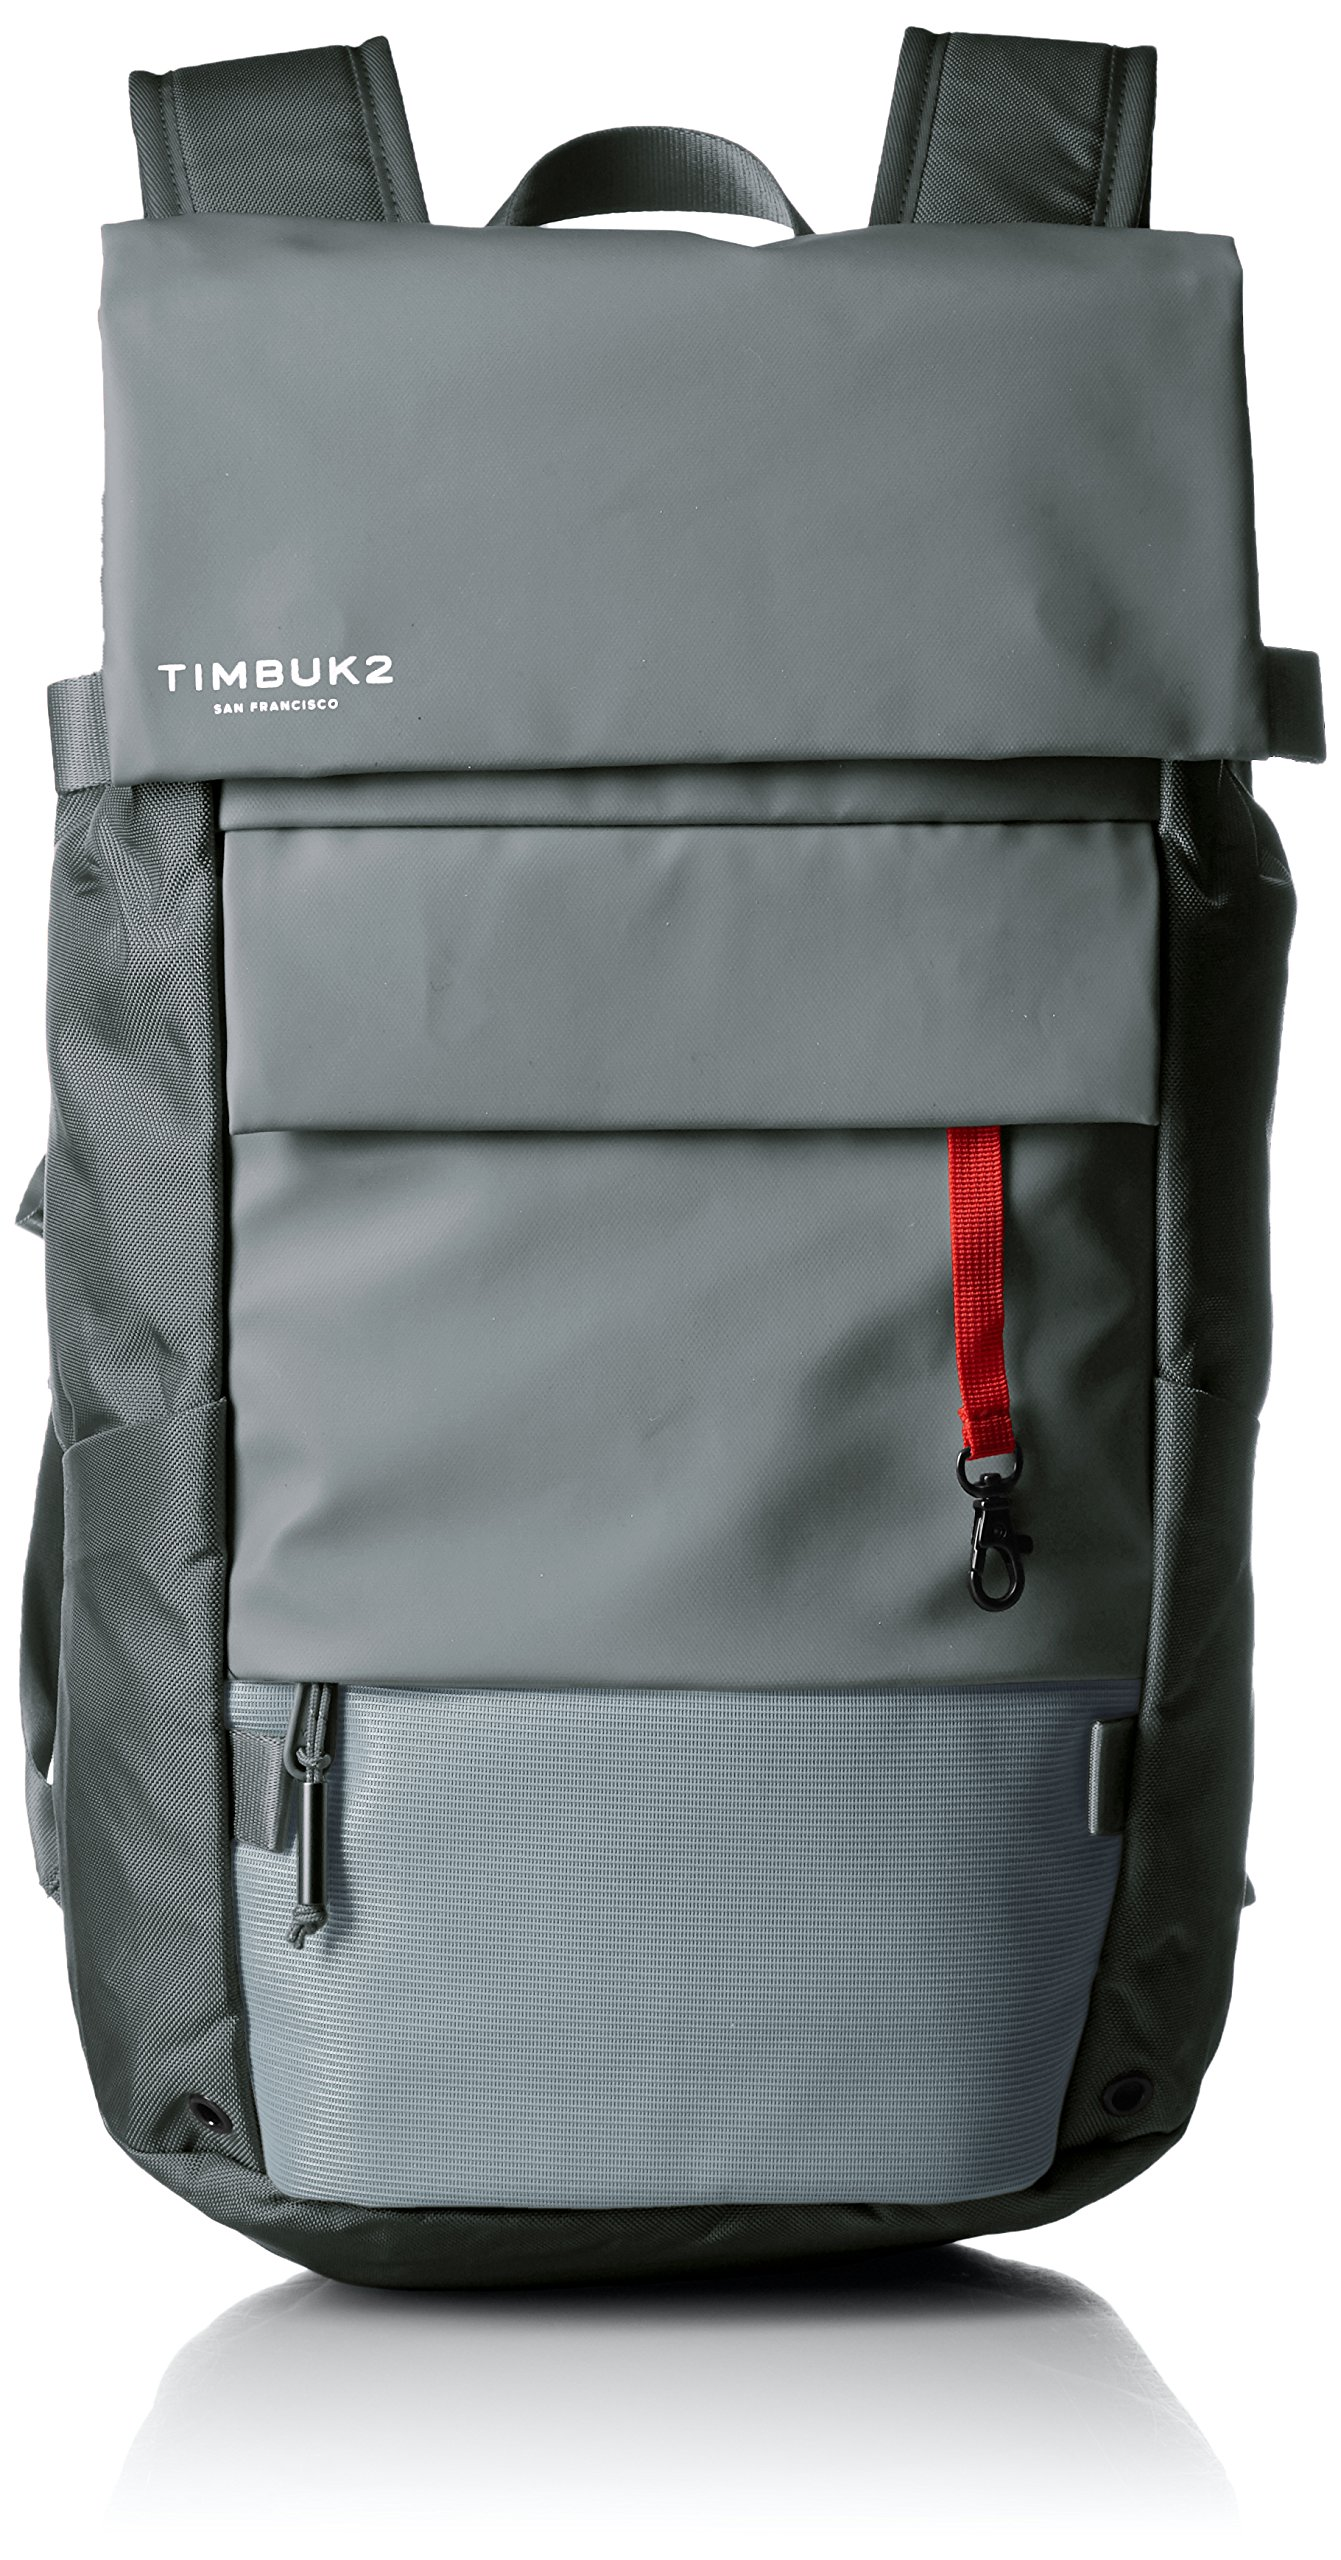 Timbuk2 Stark Messenger Bag